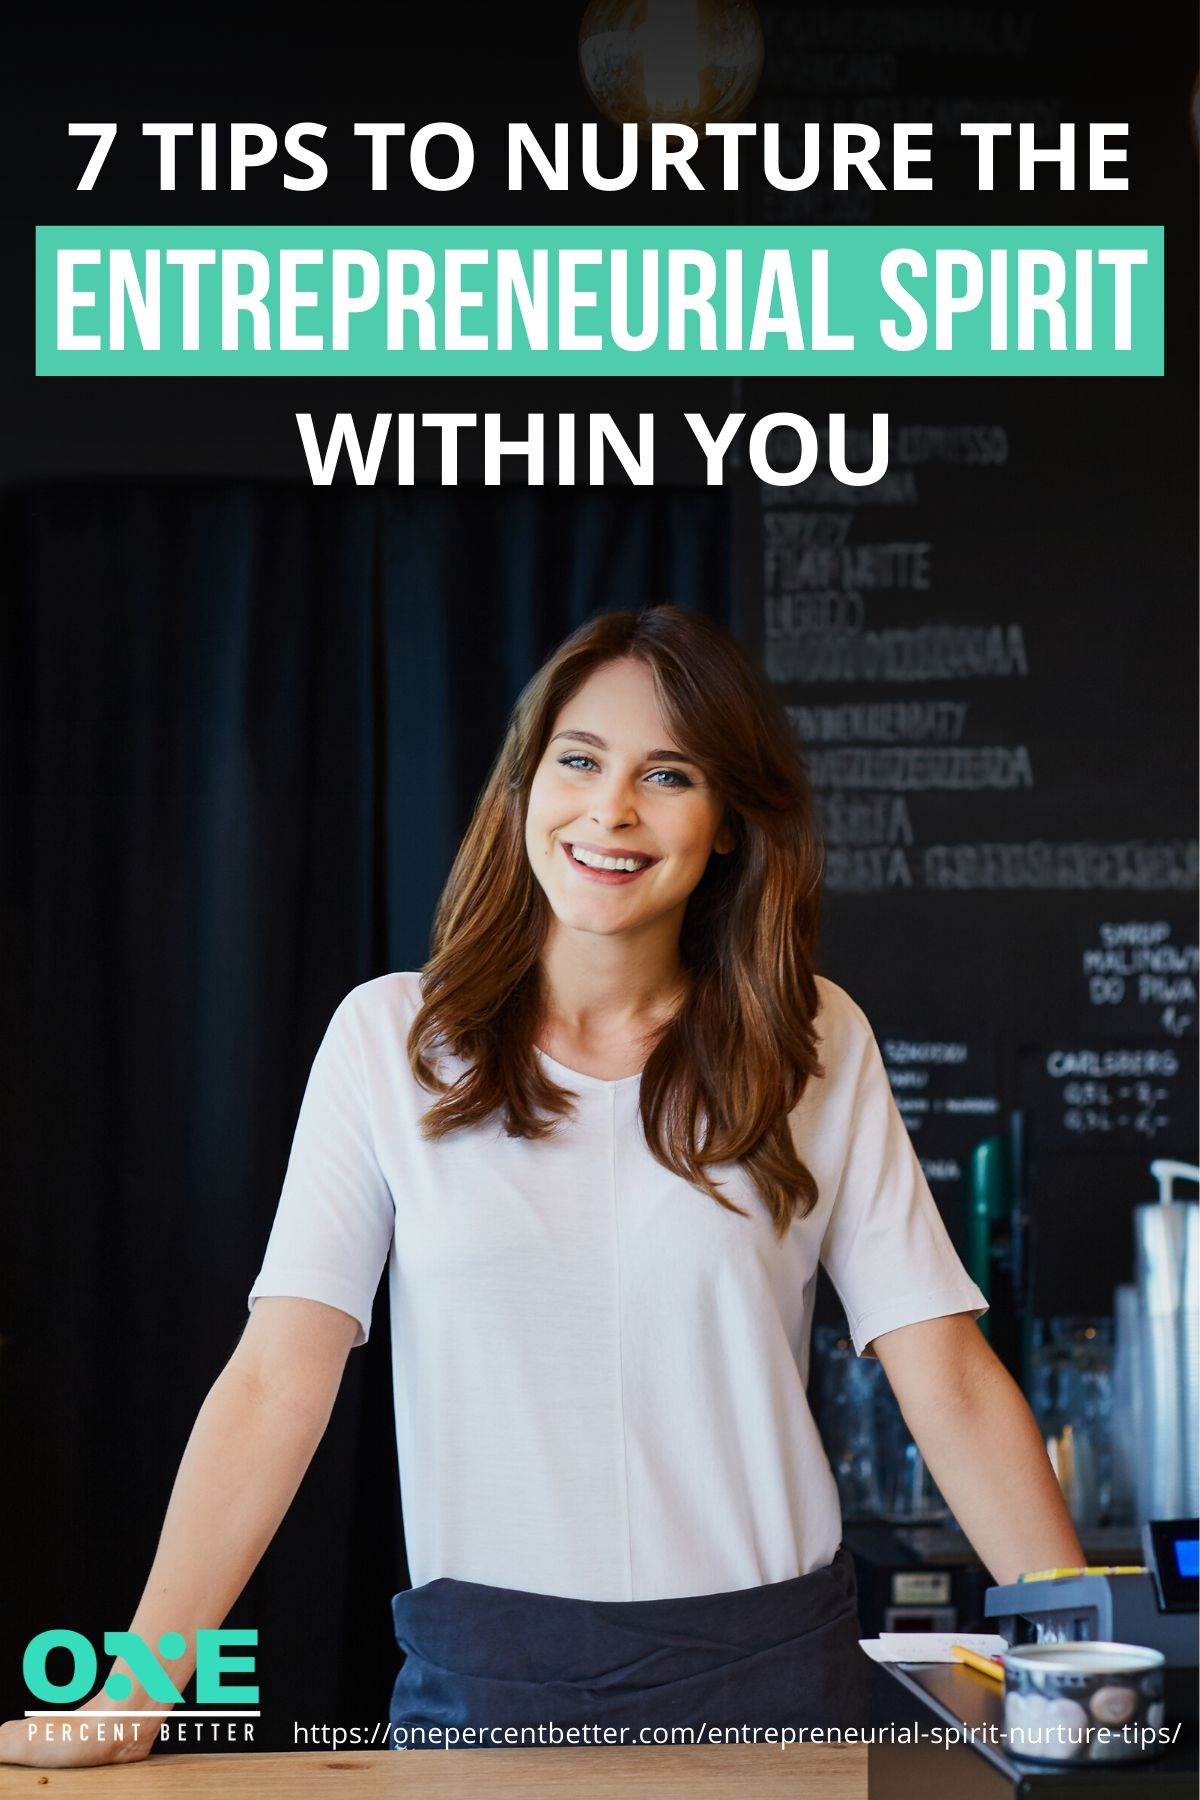 7 Tips To Nurture The Entrepreneurial Spirit Within You | https://onepercentbetter.com/entrepreneurial-spirit-nurture-tips/